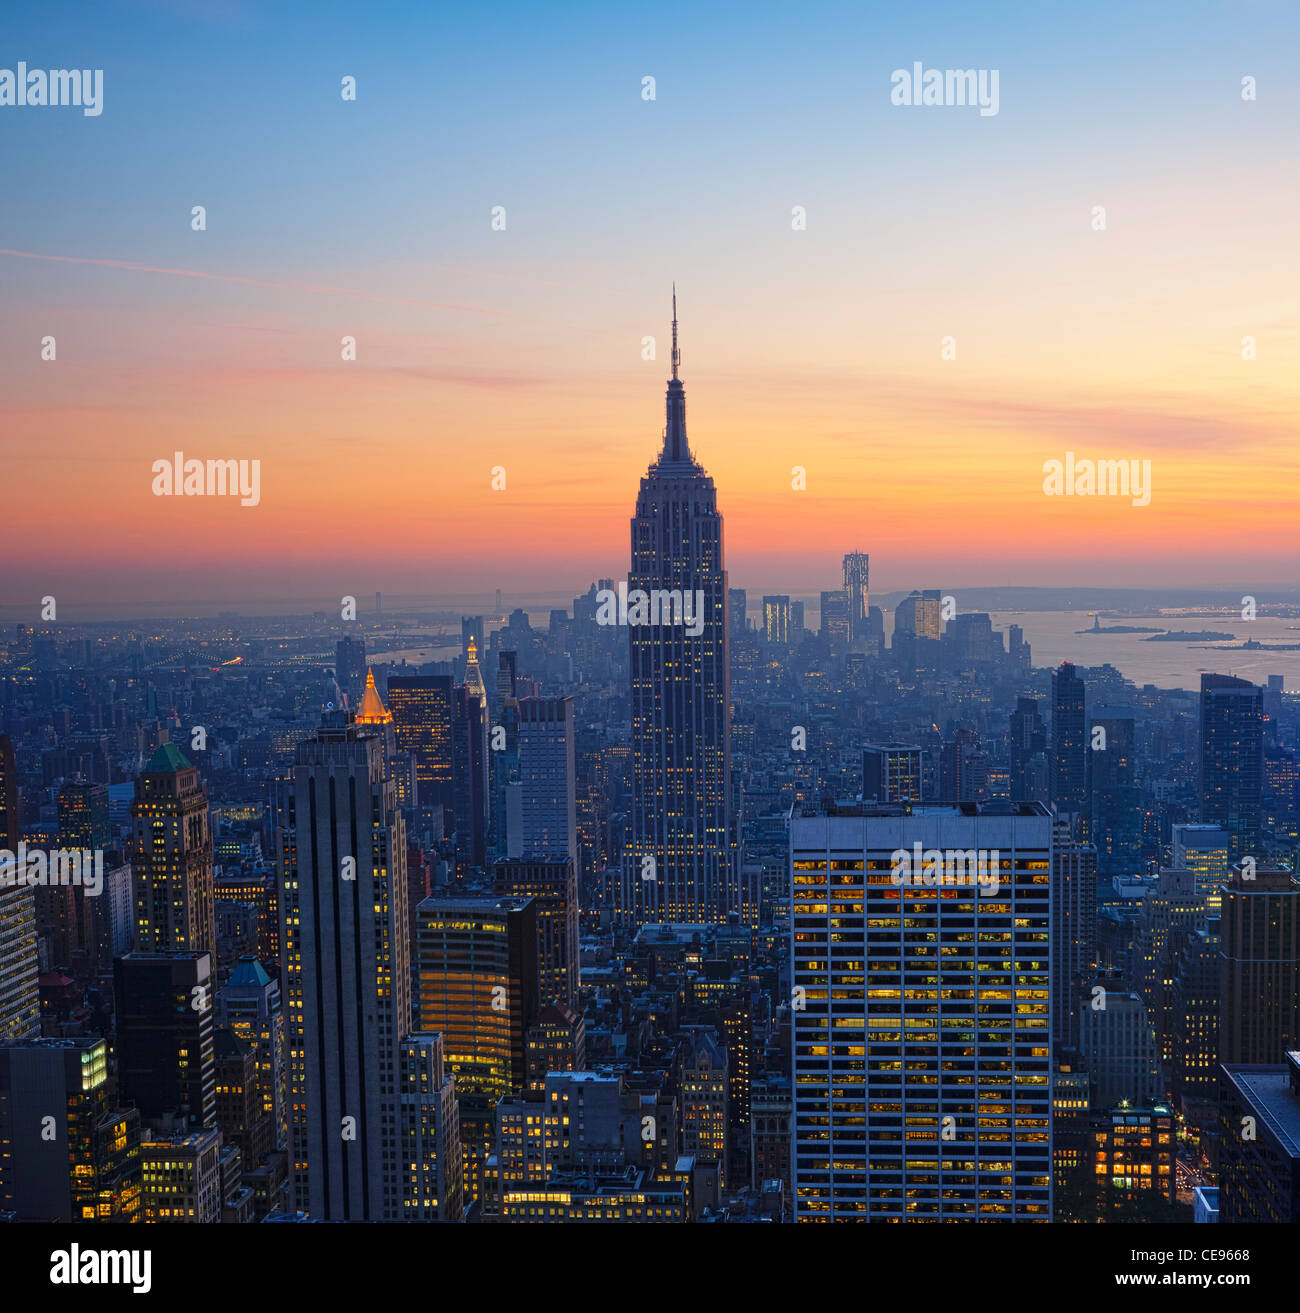 Empire State Building au coucher du soleil du haut de l'Observatoire Rock Photo Stock